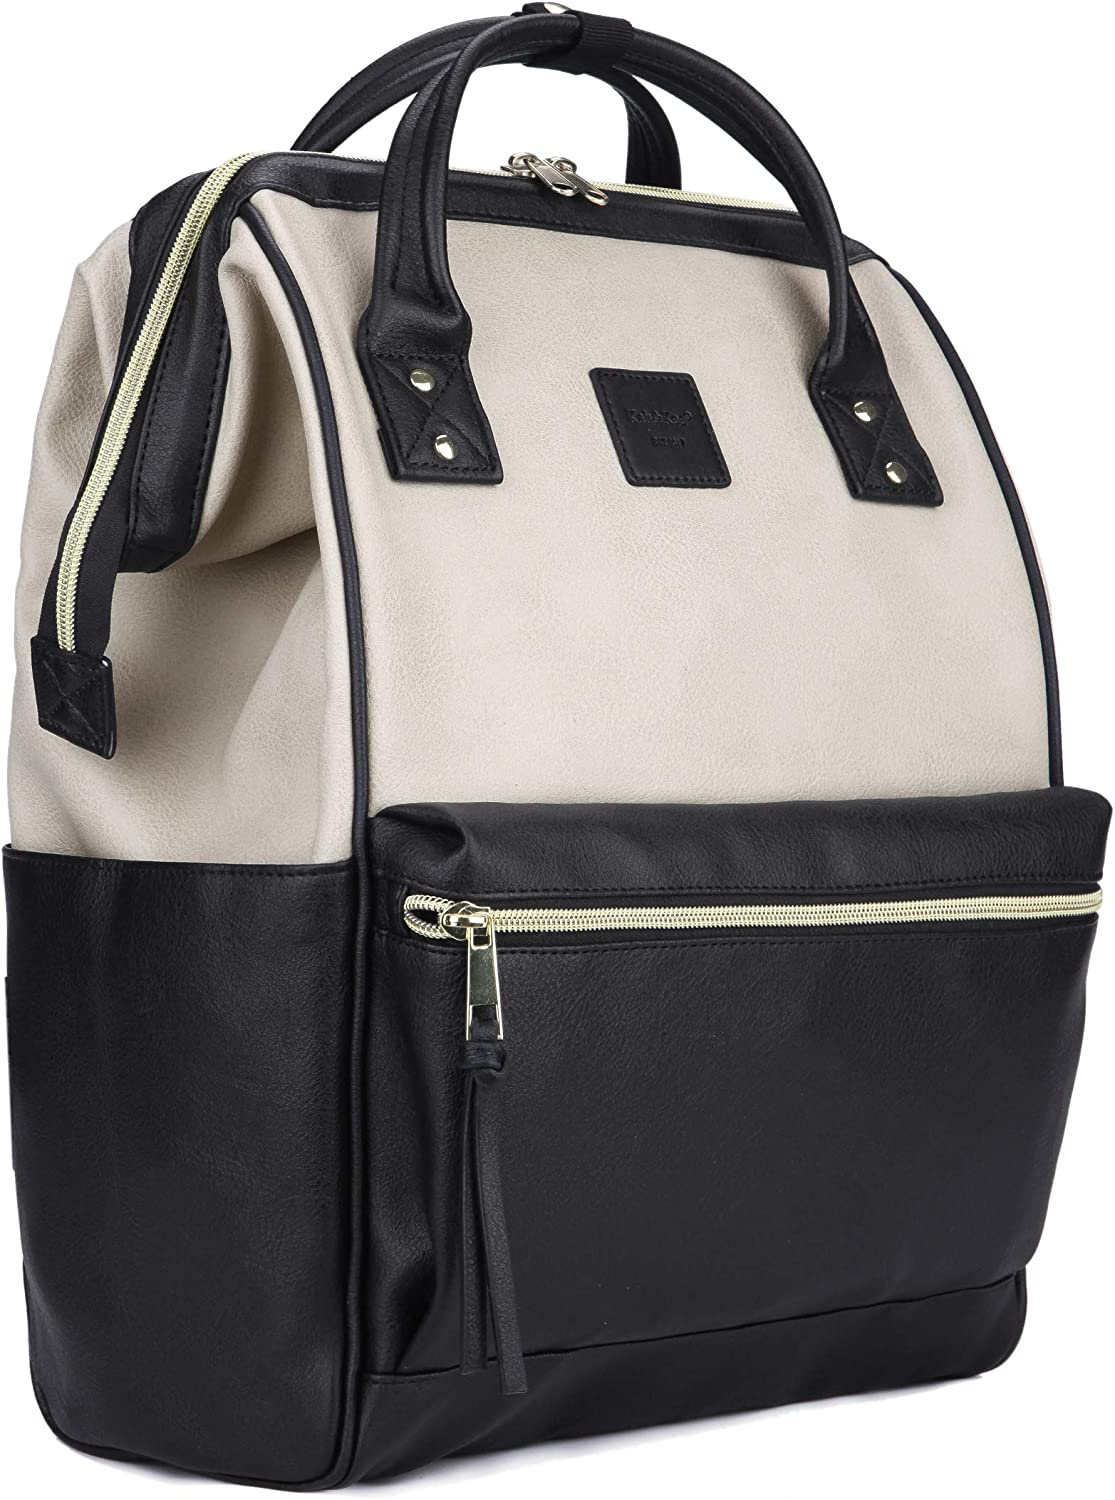 Kah&Kee-Leather-Backpack-Diaper-Bag/